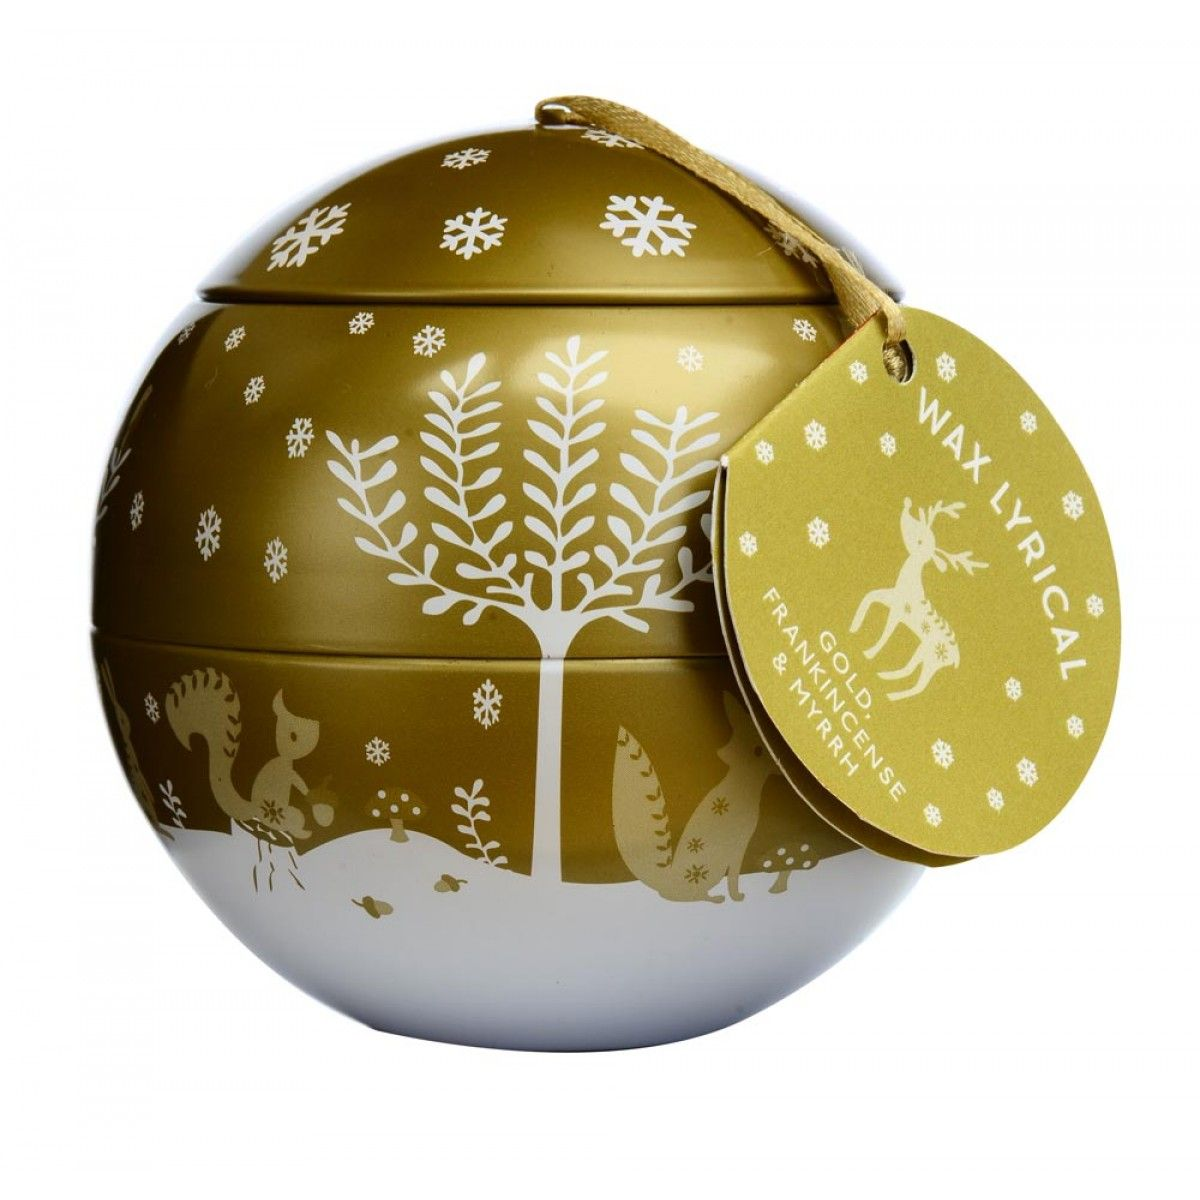 Gold Frankincense And Myrrh Christmas Gifts.Gold Christmas Scented Candle Bauble Gift Set Wax Lyrical Gold Frankincense Myrrh